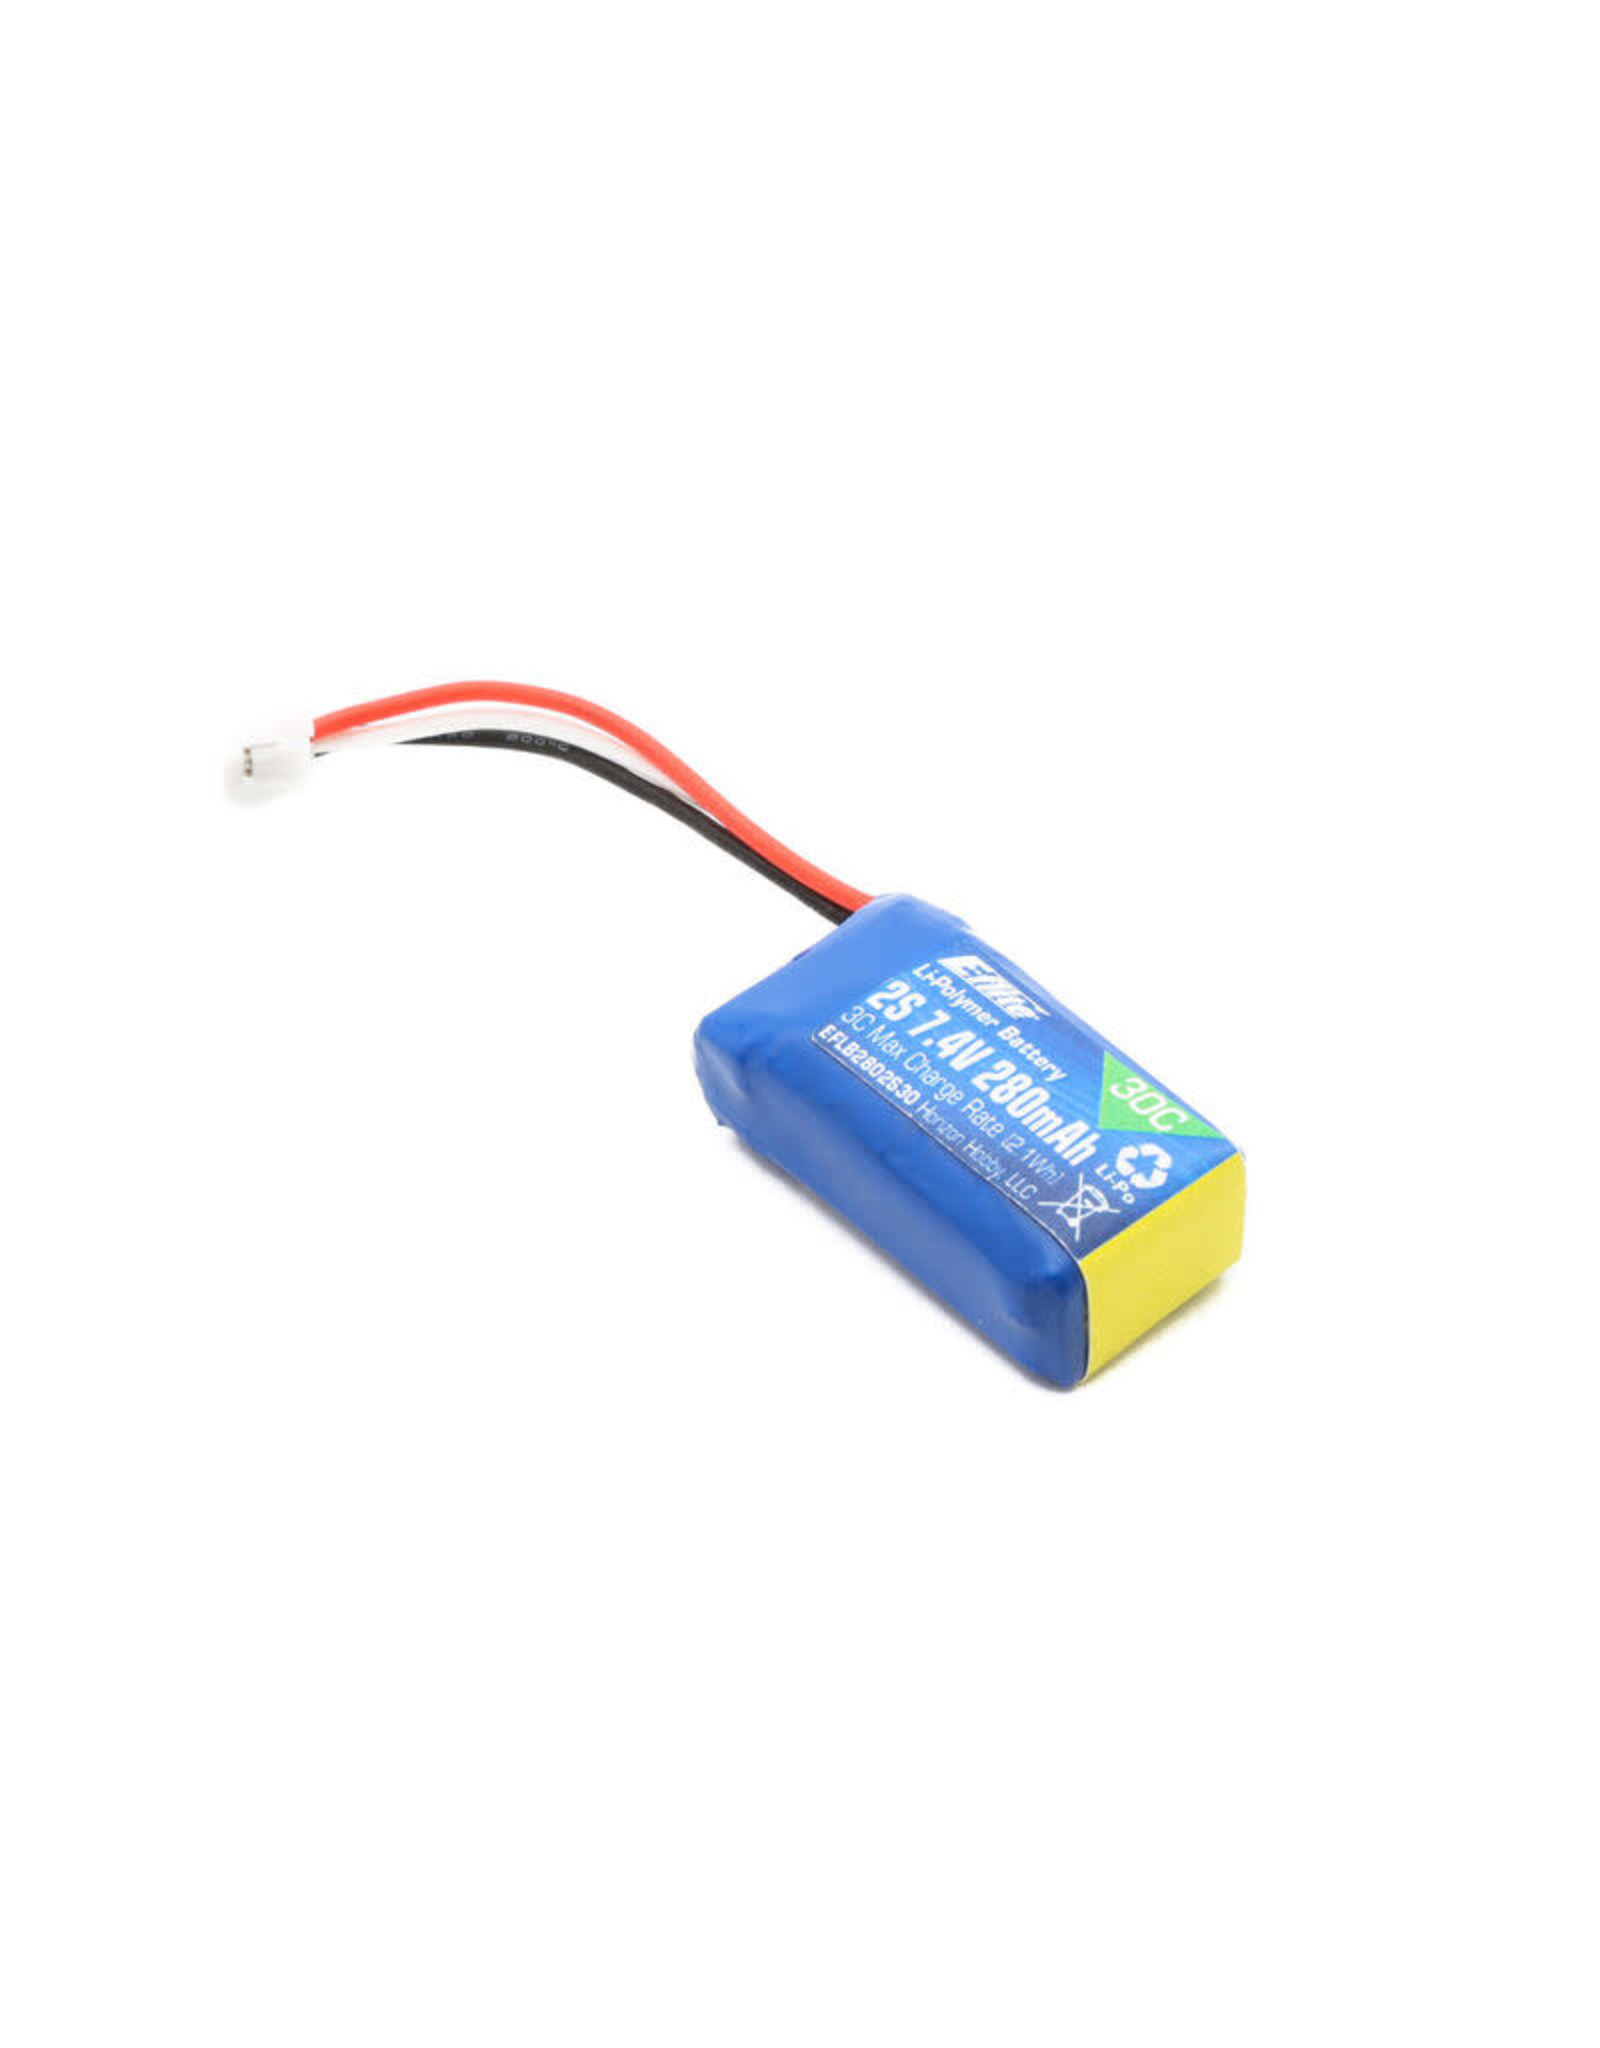 Eflite 7.4V 280mAh 2S 30C LiPo Battery: PH